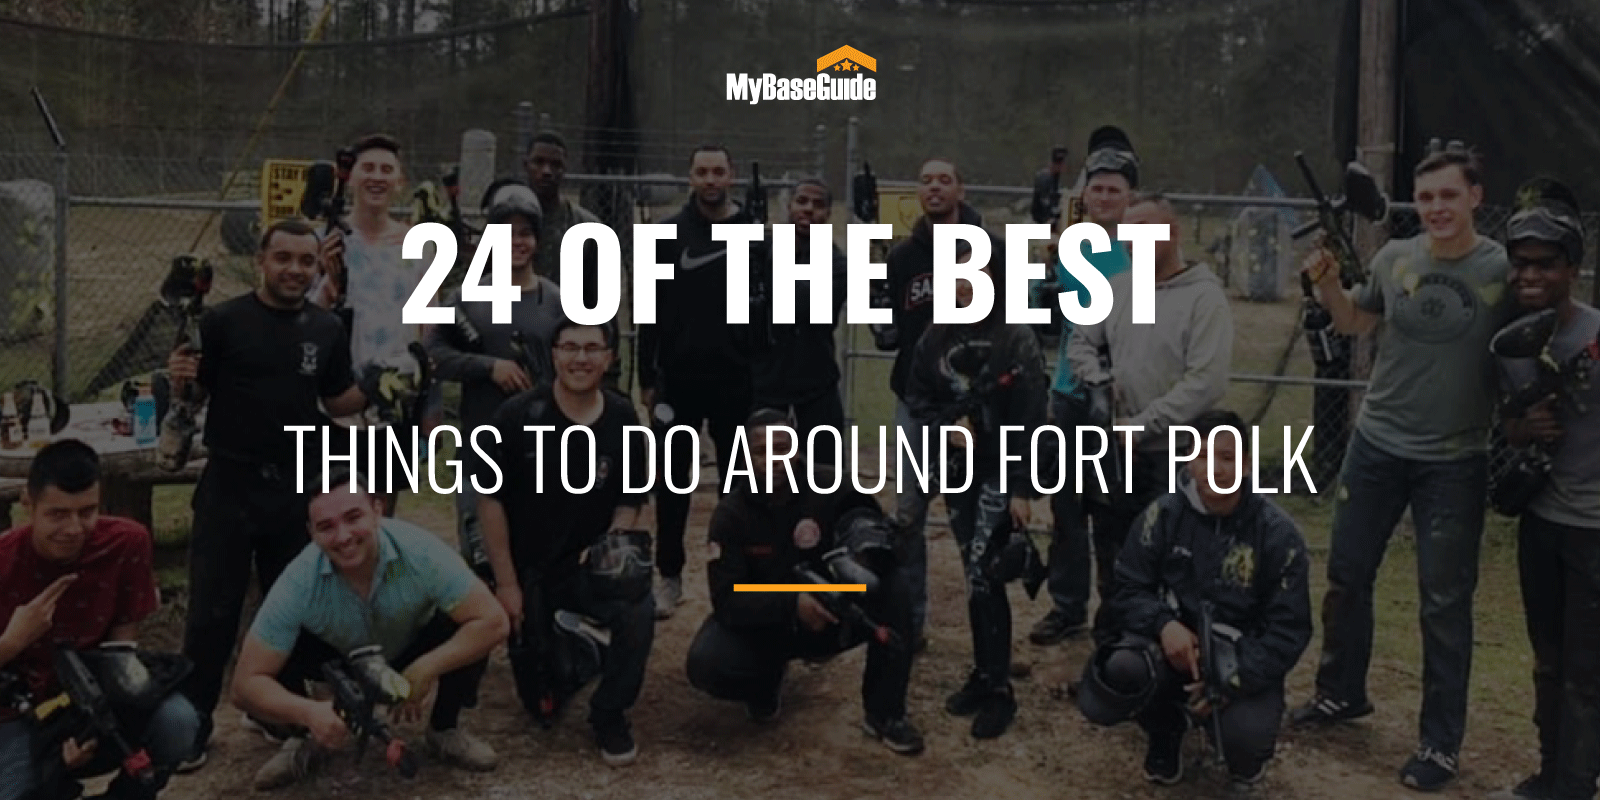 24 Of the Best Things to Do Around Fort Polk